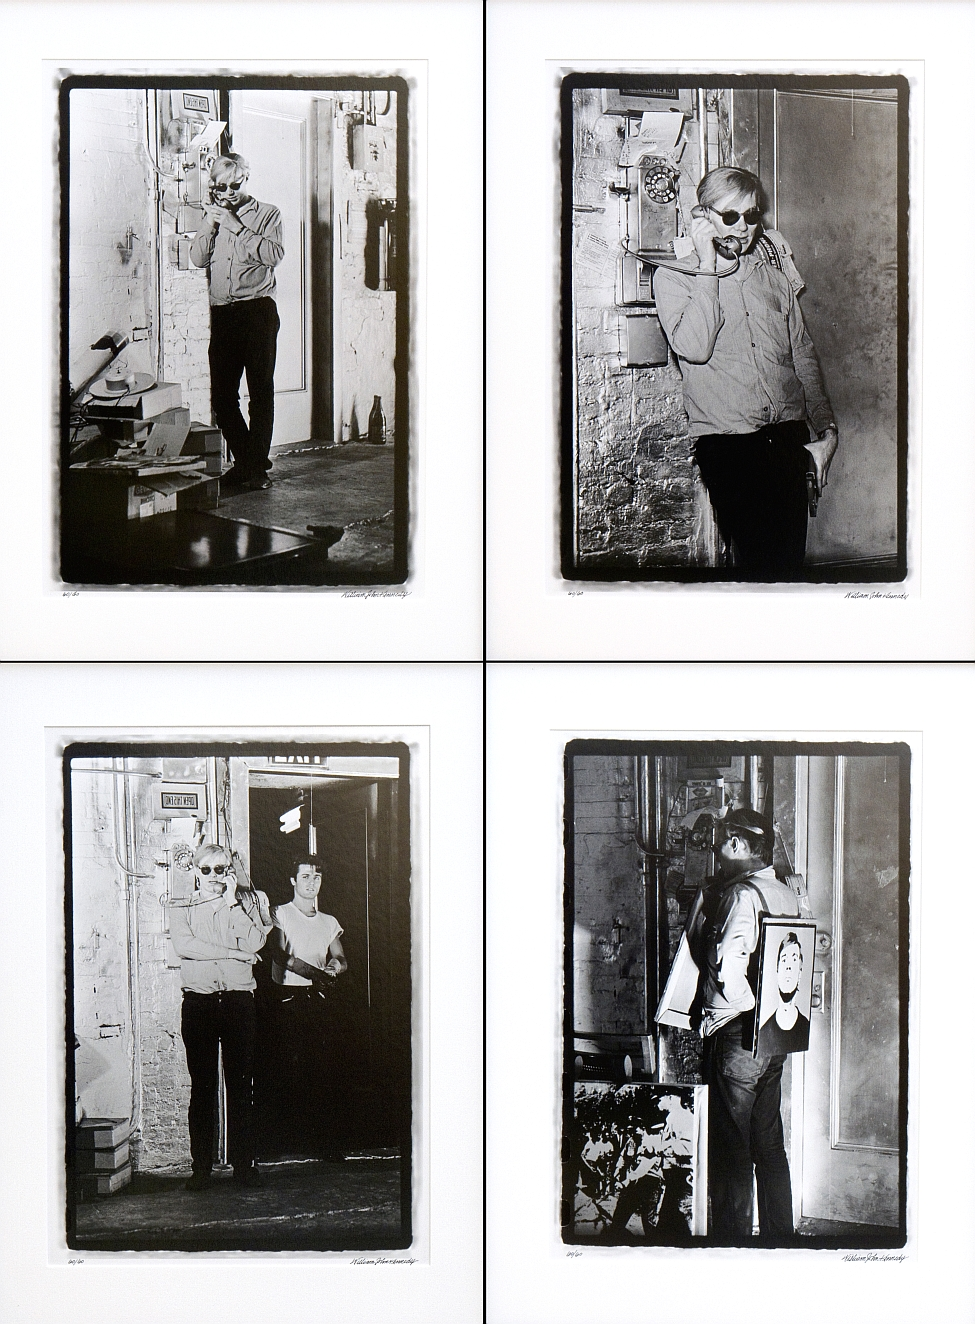 Silver gelatin fiber print by William John Kennedy, titled Warhol Factory Telephone Suite I-IV